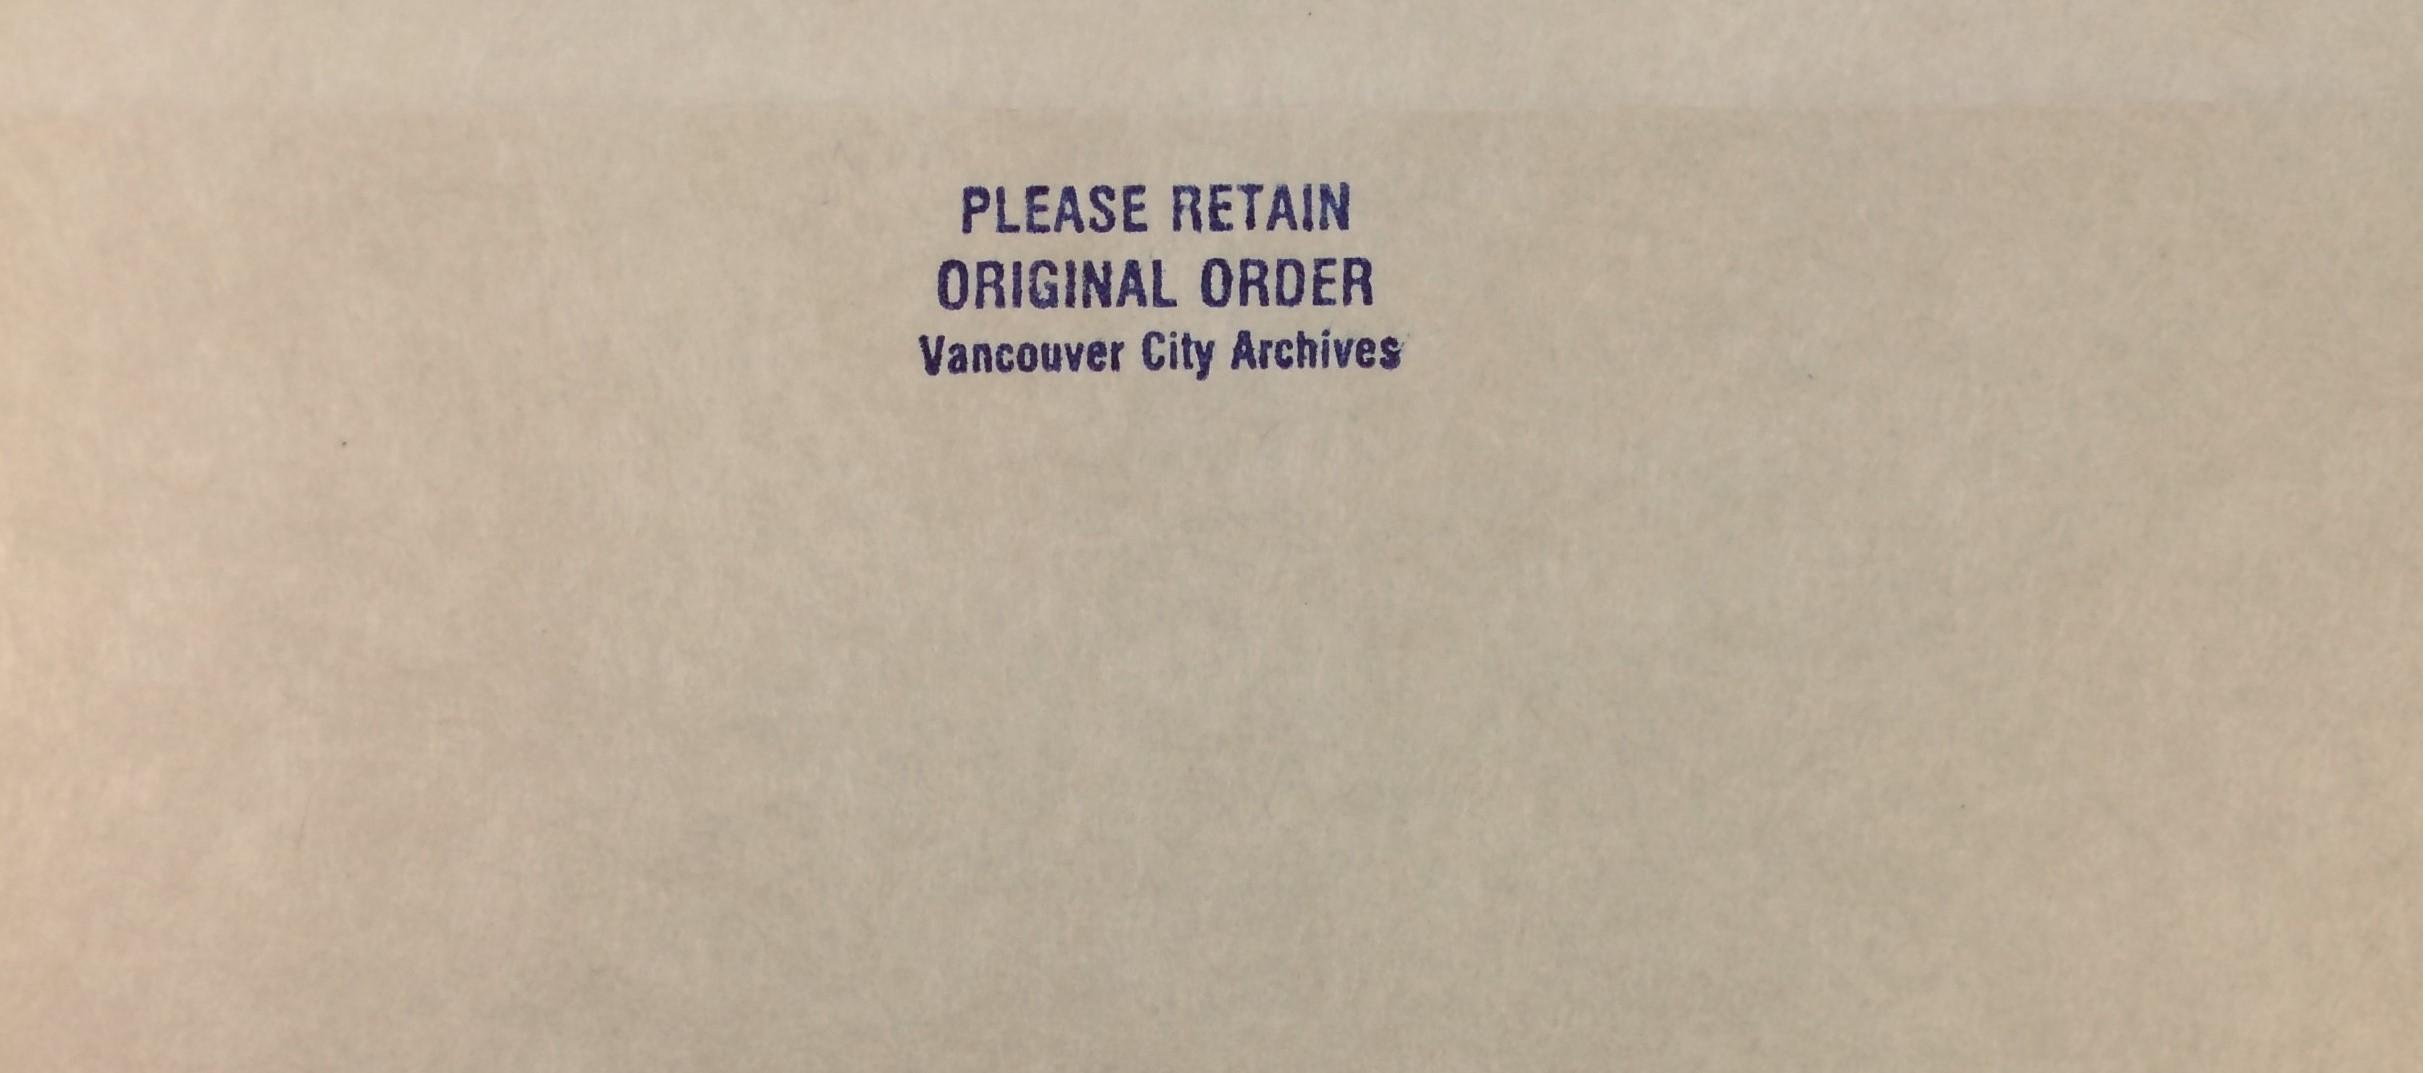 A stamp on some of our folders reminding people to keep the records in original order. Photo by Bronwyn Smyth